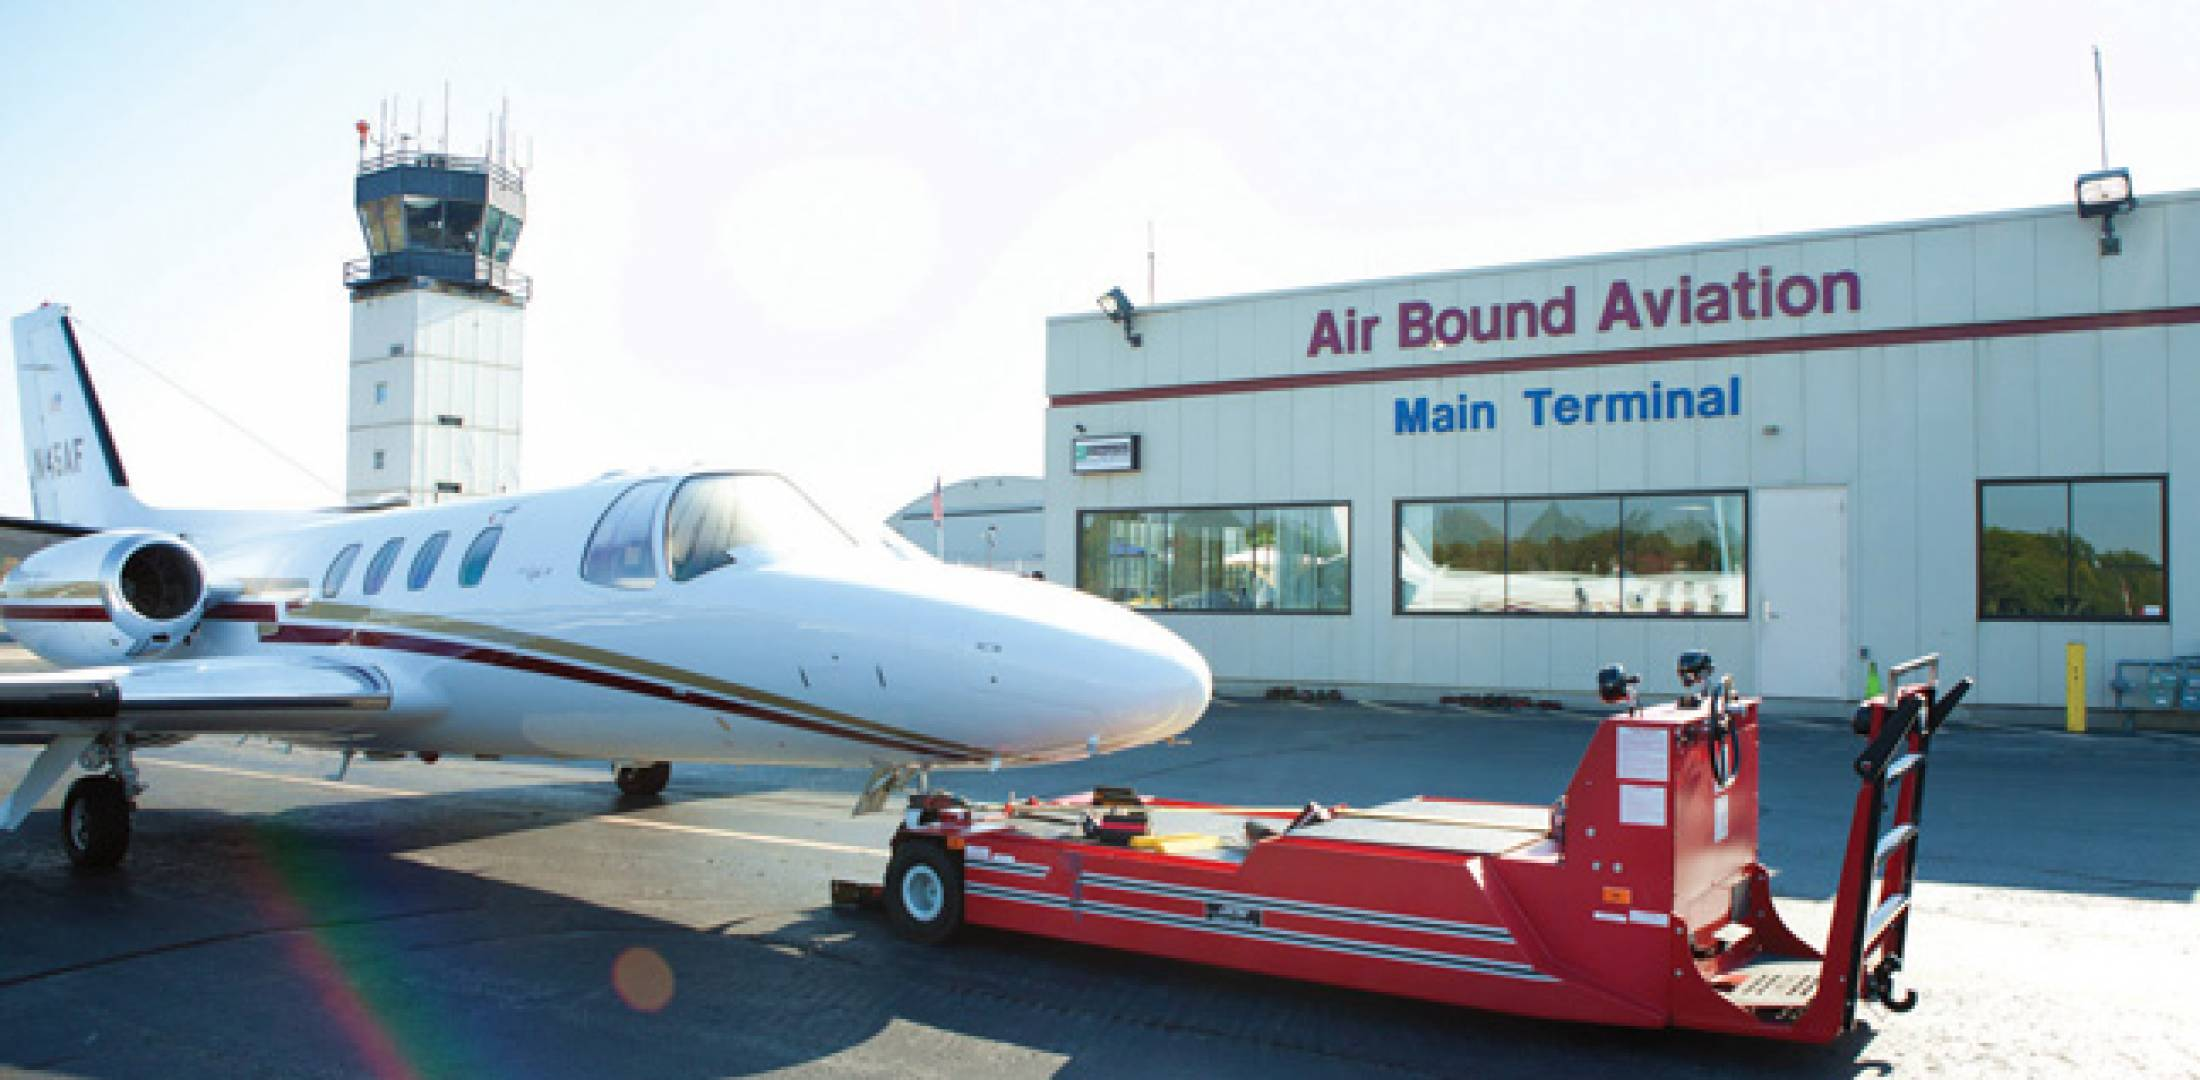 Essex County Airport is ideally suited for turboprops and small jets. Air Bound Aviation is planning a minor refurbishment of its facility.